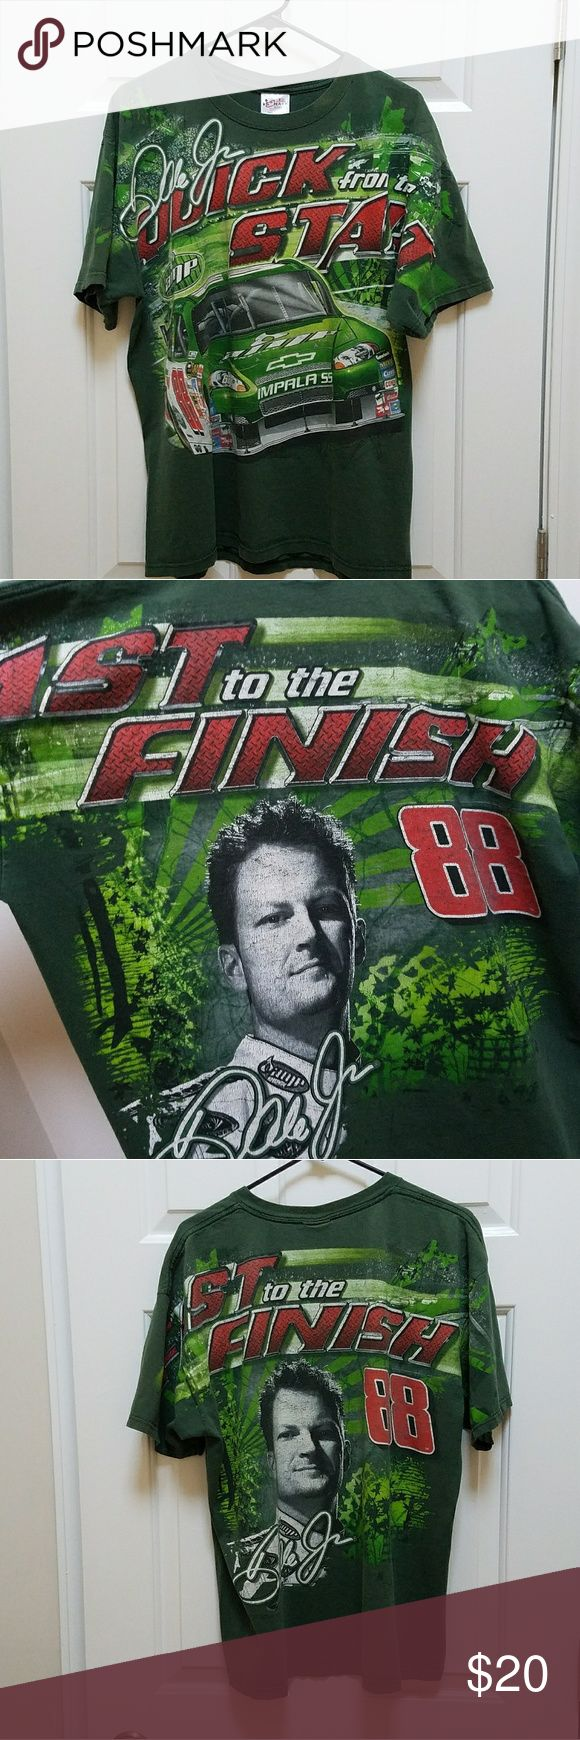 Dale Earnhardt Junior Nascar Chase T-shirt Chase Green T-shirt Nascar Dale Earnhardt Jr. Amp Energy Mountain Dew Chevy Impala SS #88 Excellent condition, very clean, XL size short sleeve shirt, manufactured in Nicaragua Chase Shirts Tees - Short Sleeve